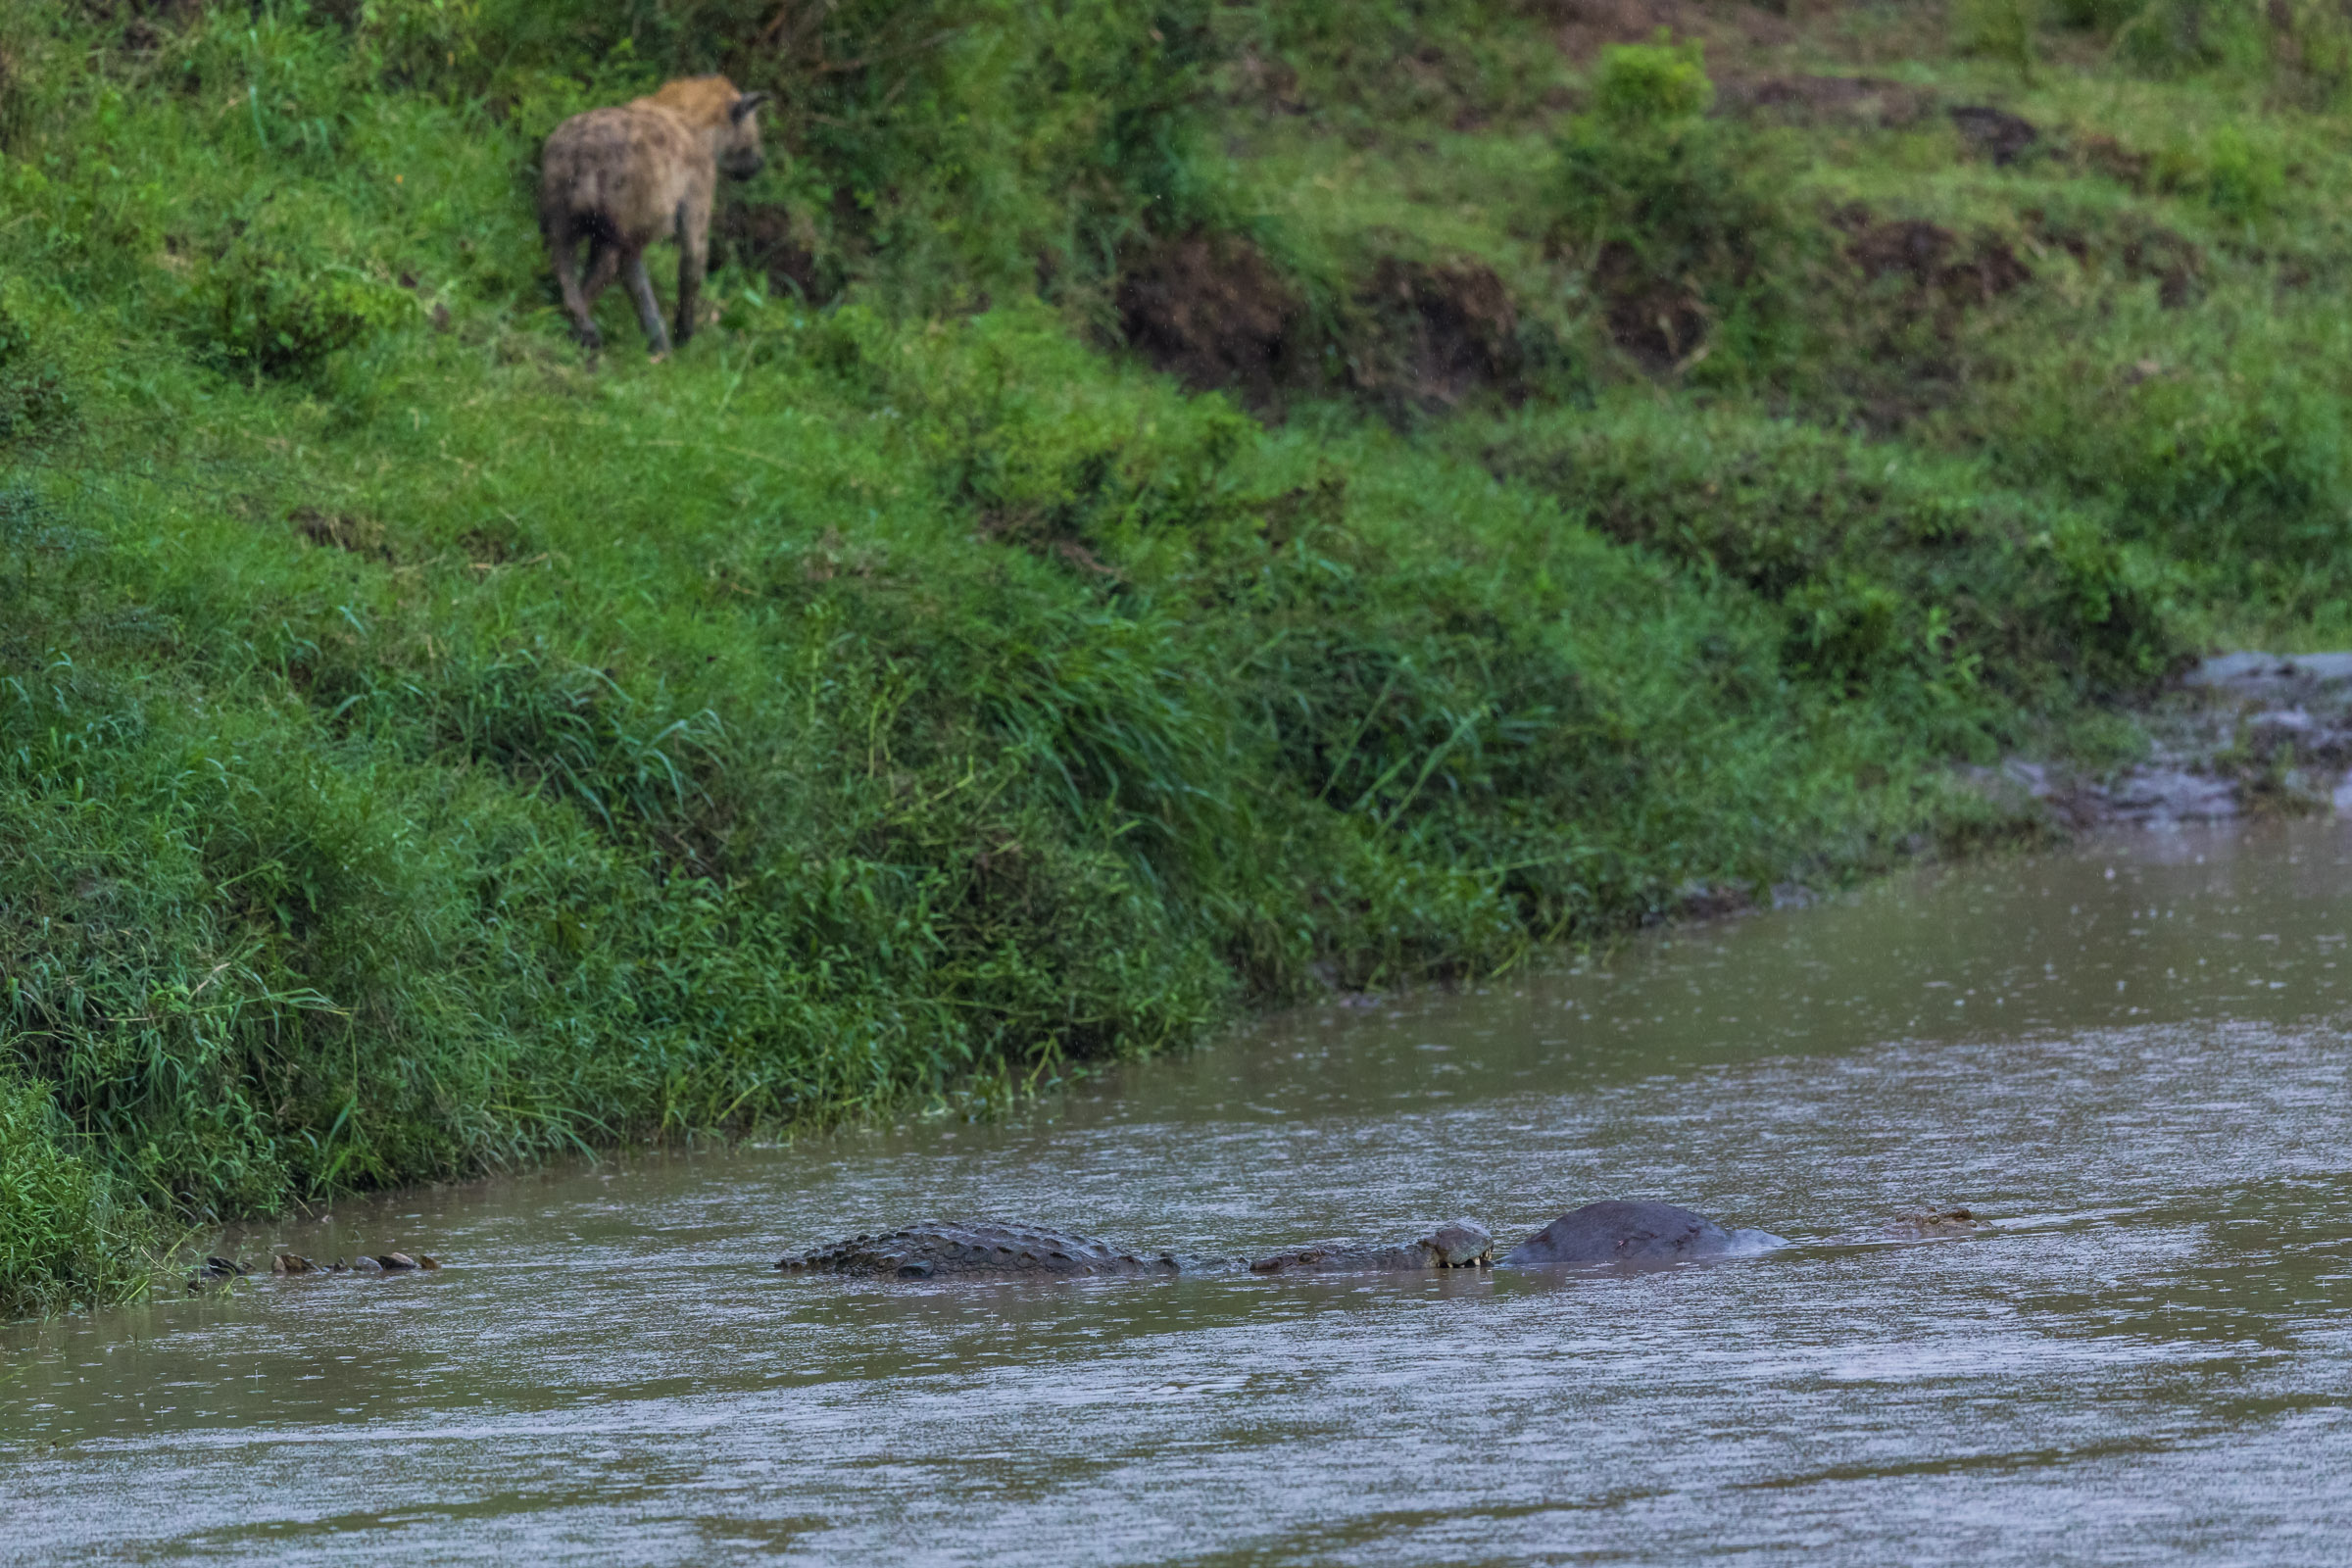 The Hyena walk by the banks watching his prey taken by others..